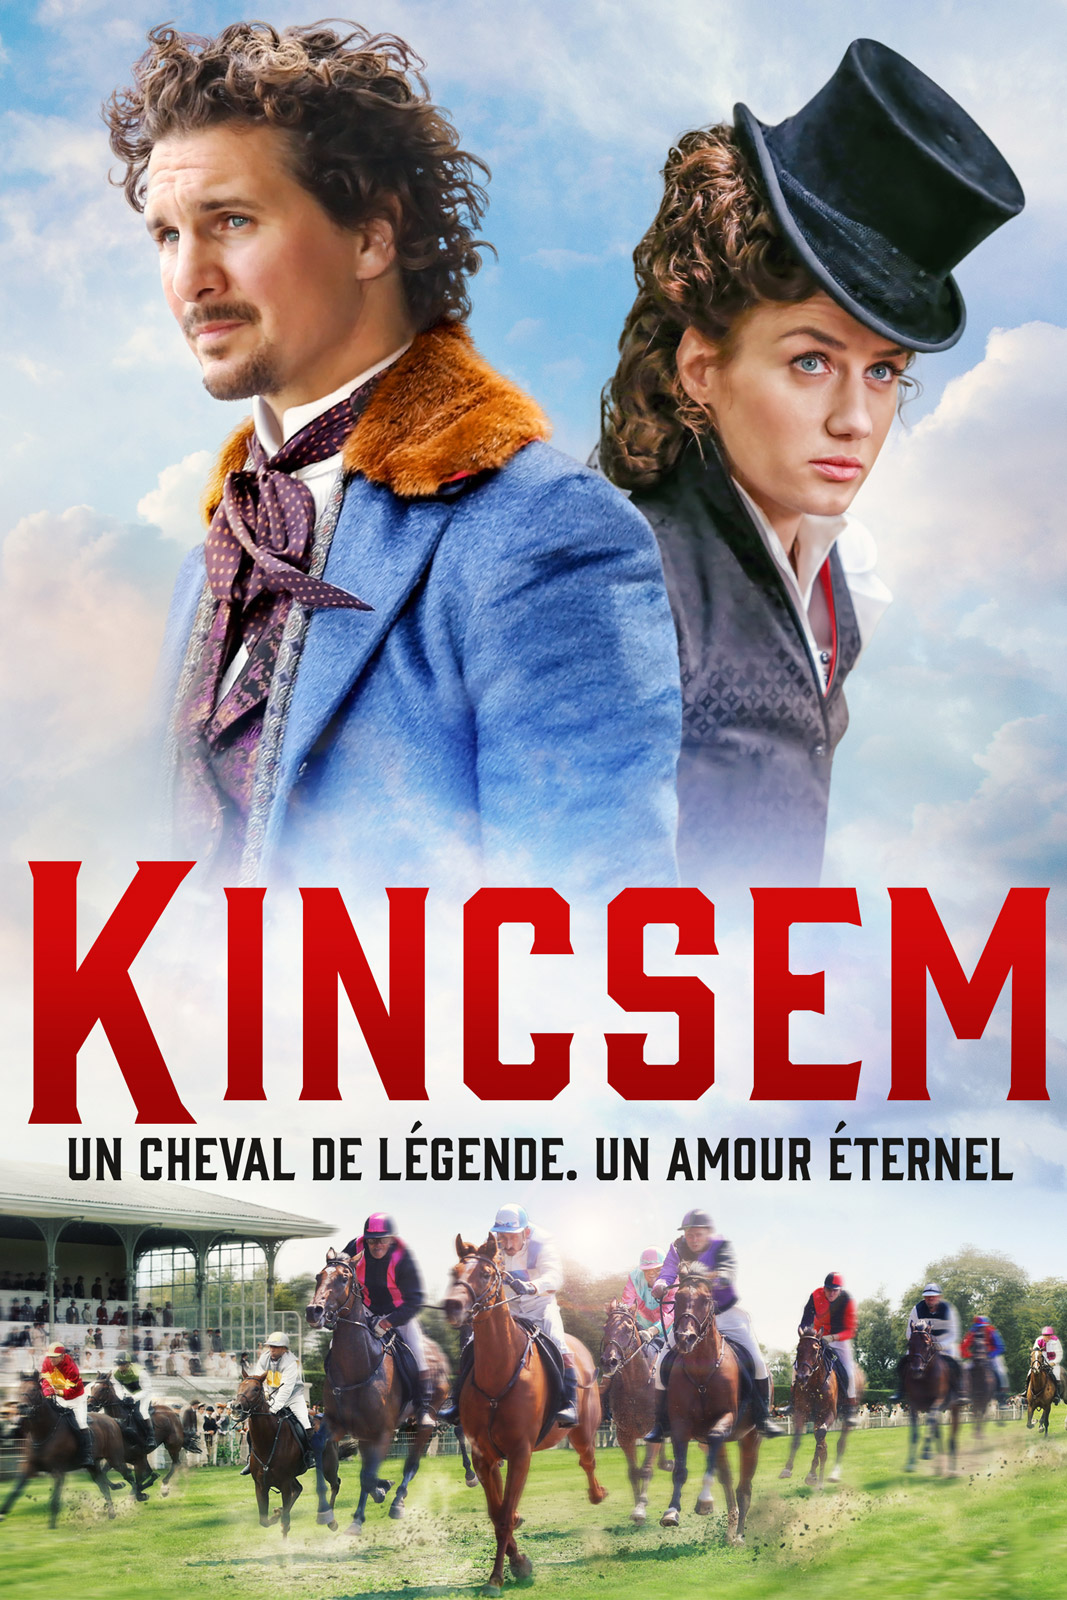 Kincsem [HDRip] [Streaming] [Telecharger]